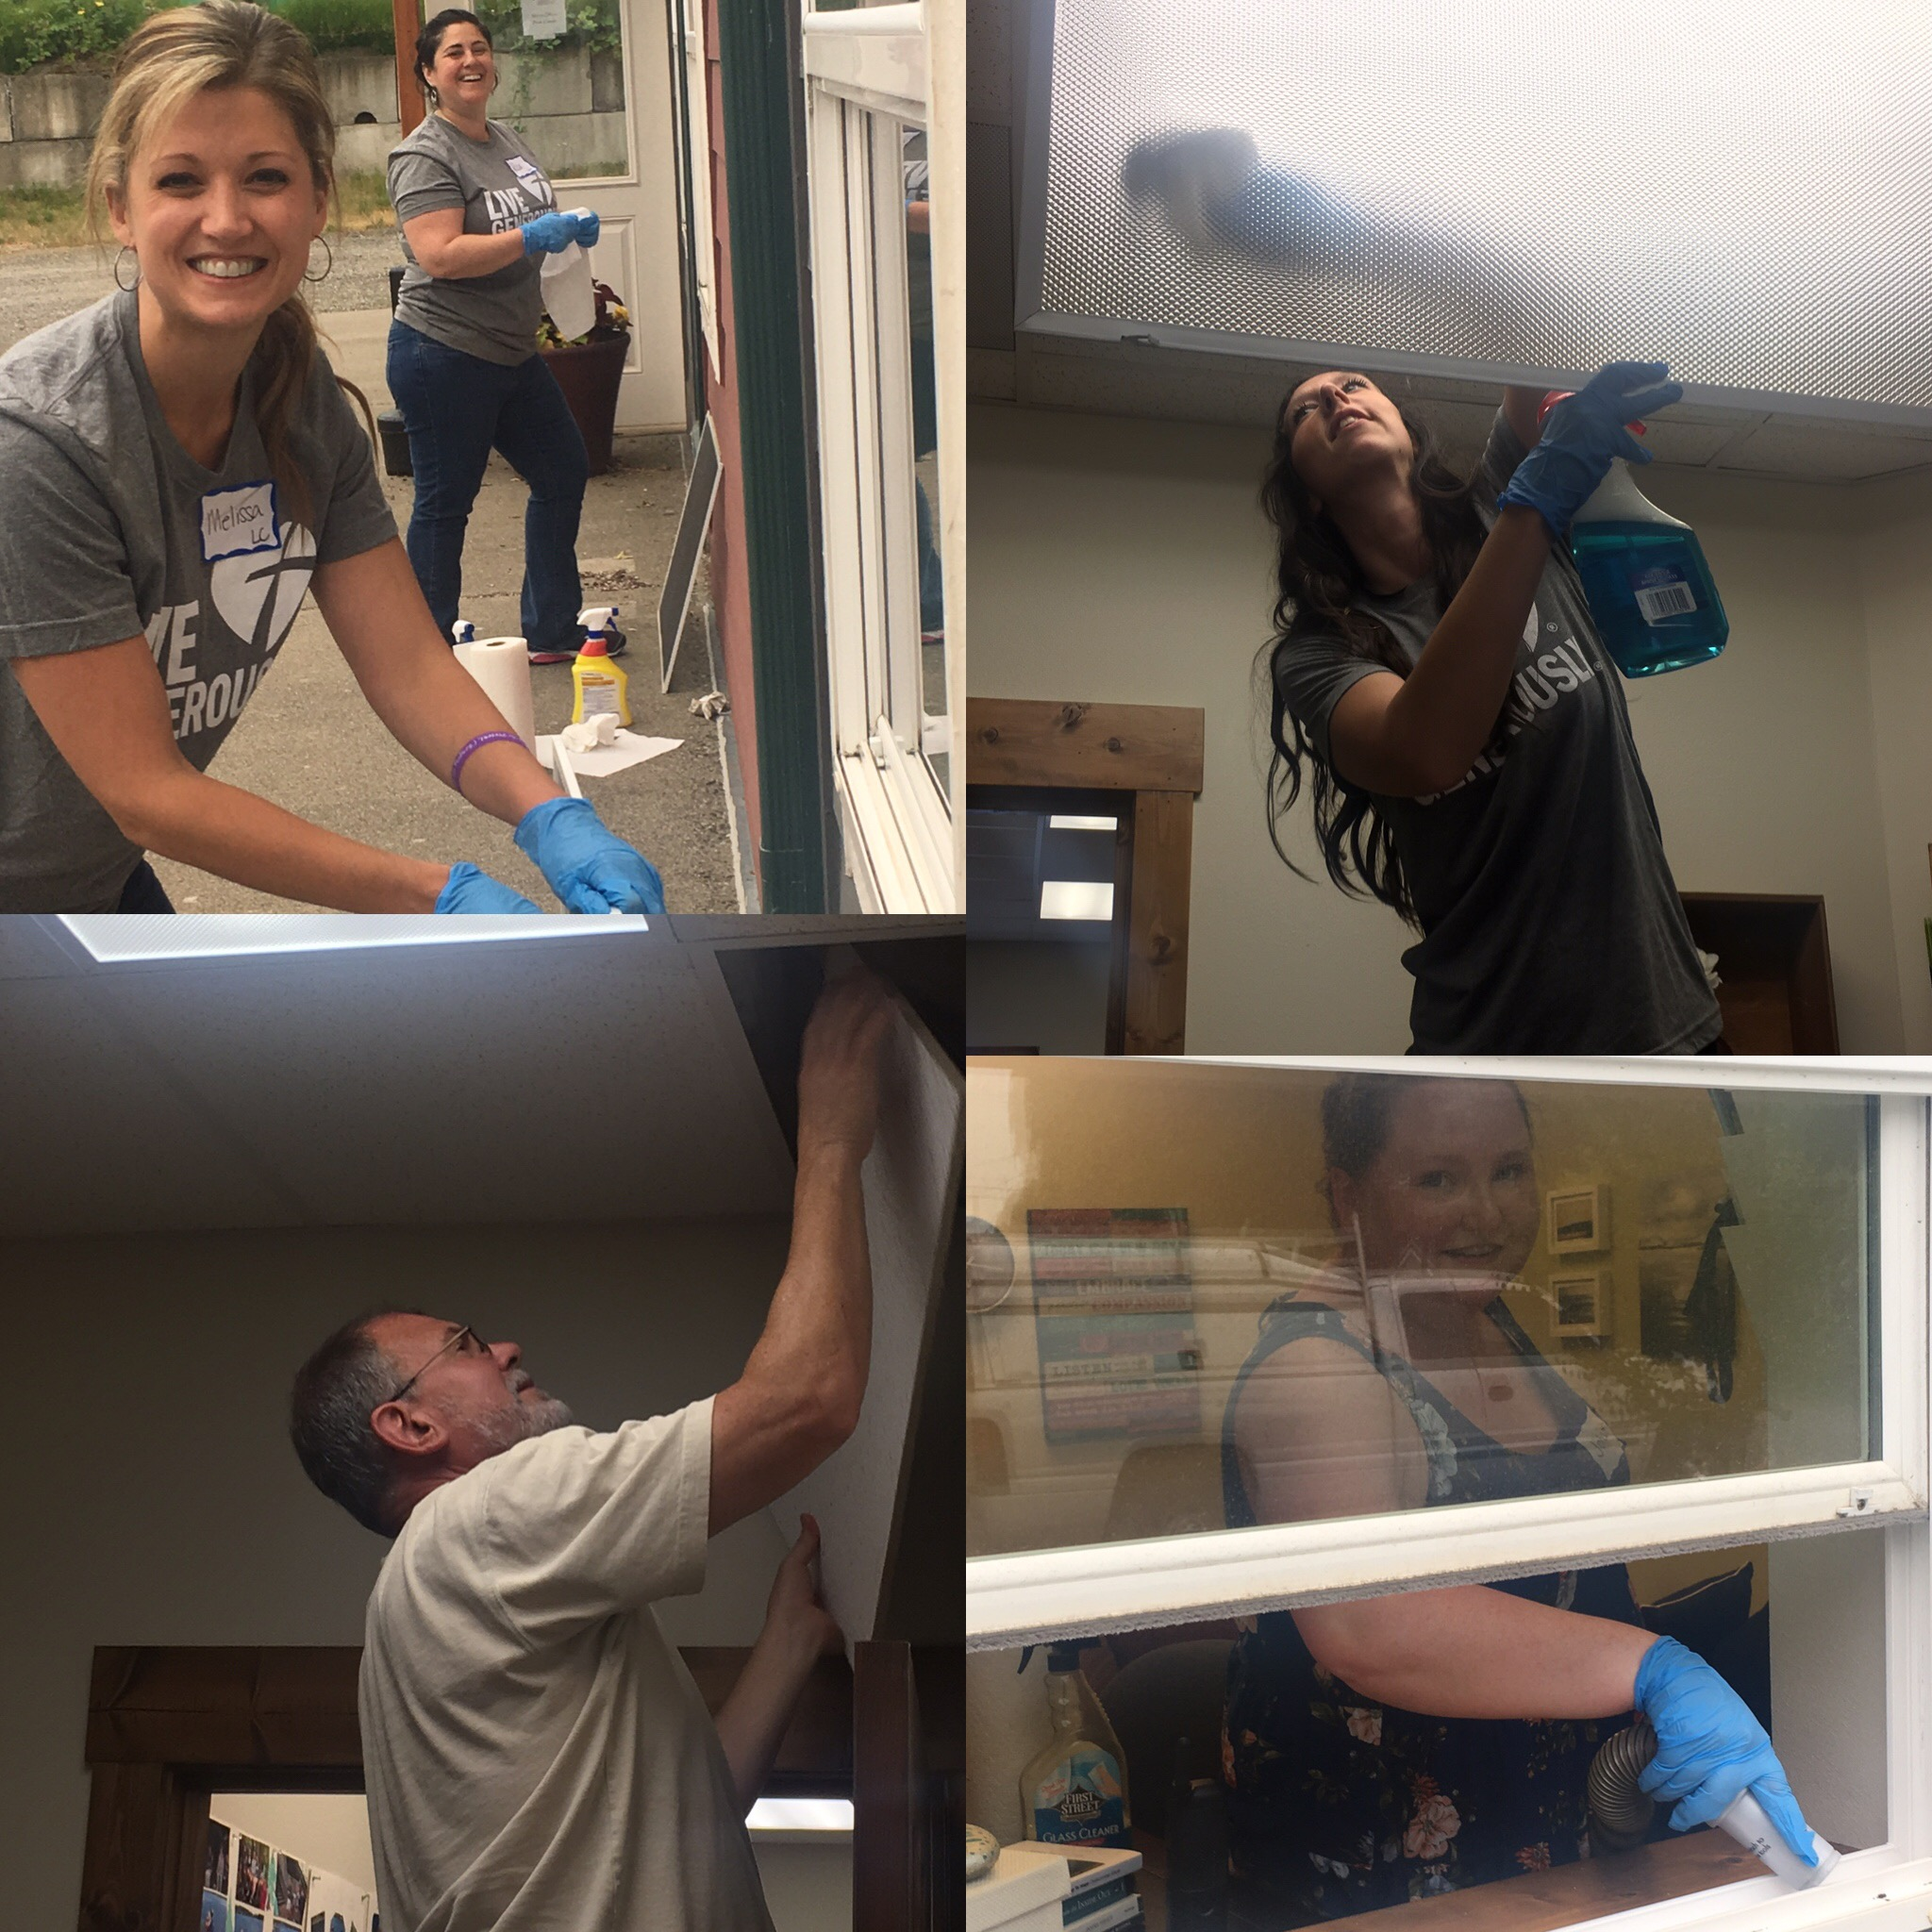 Women's ministry and Engedi staff spent an evening cleaning and weeding at both Engedi Refuge Ministries' properties where women escaping sexual exploitation are staying.